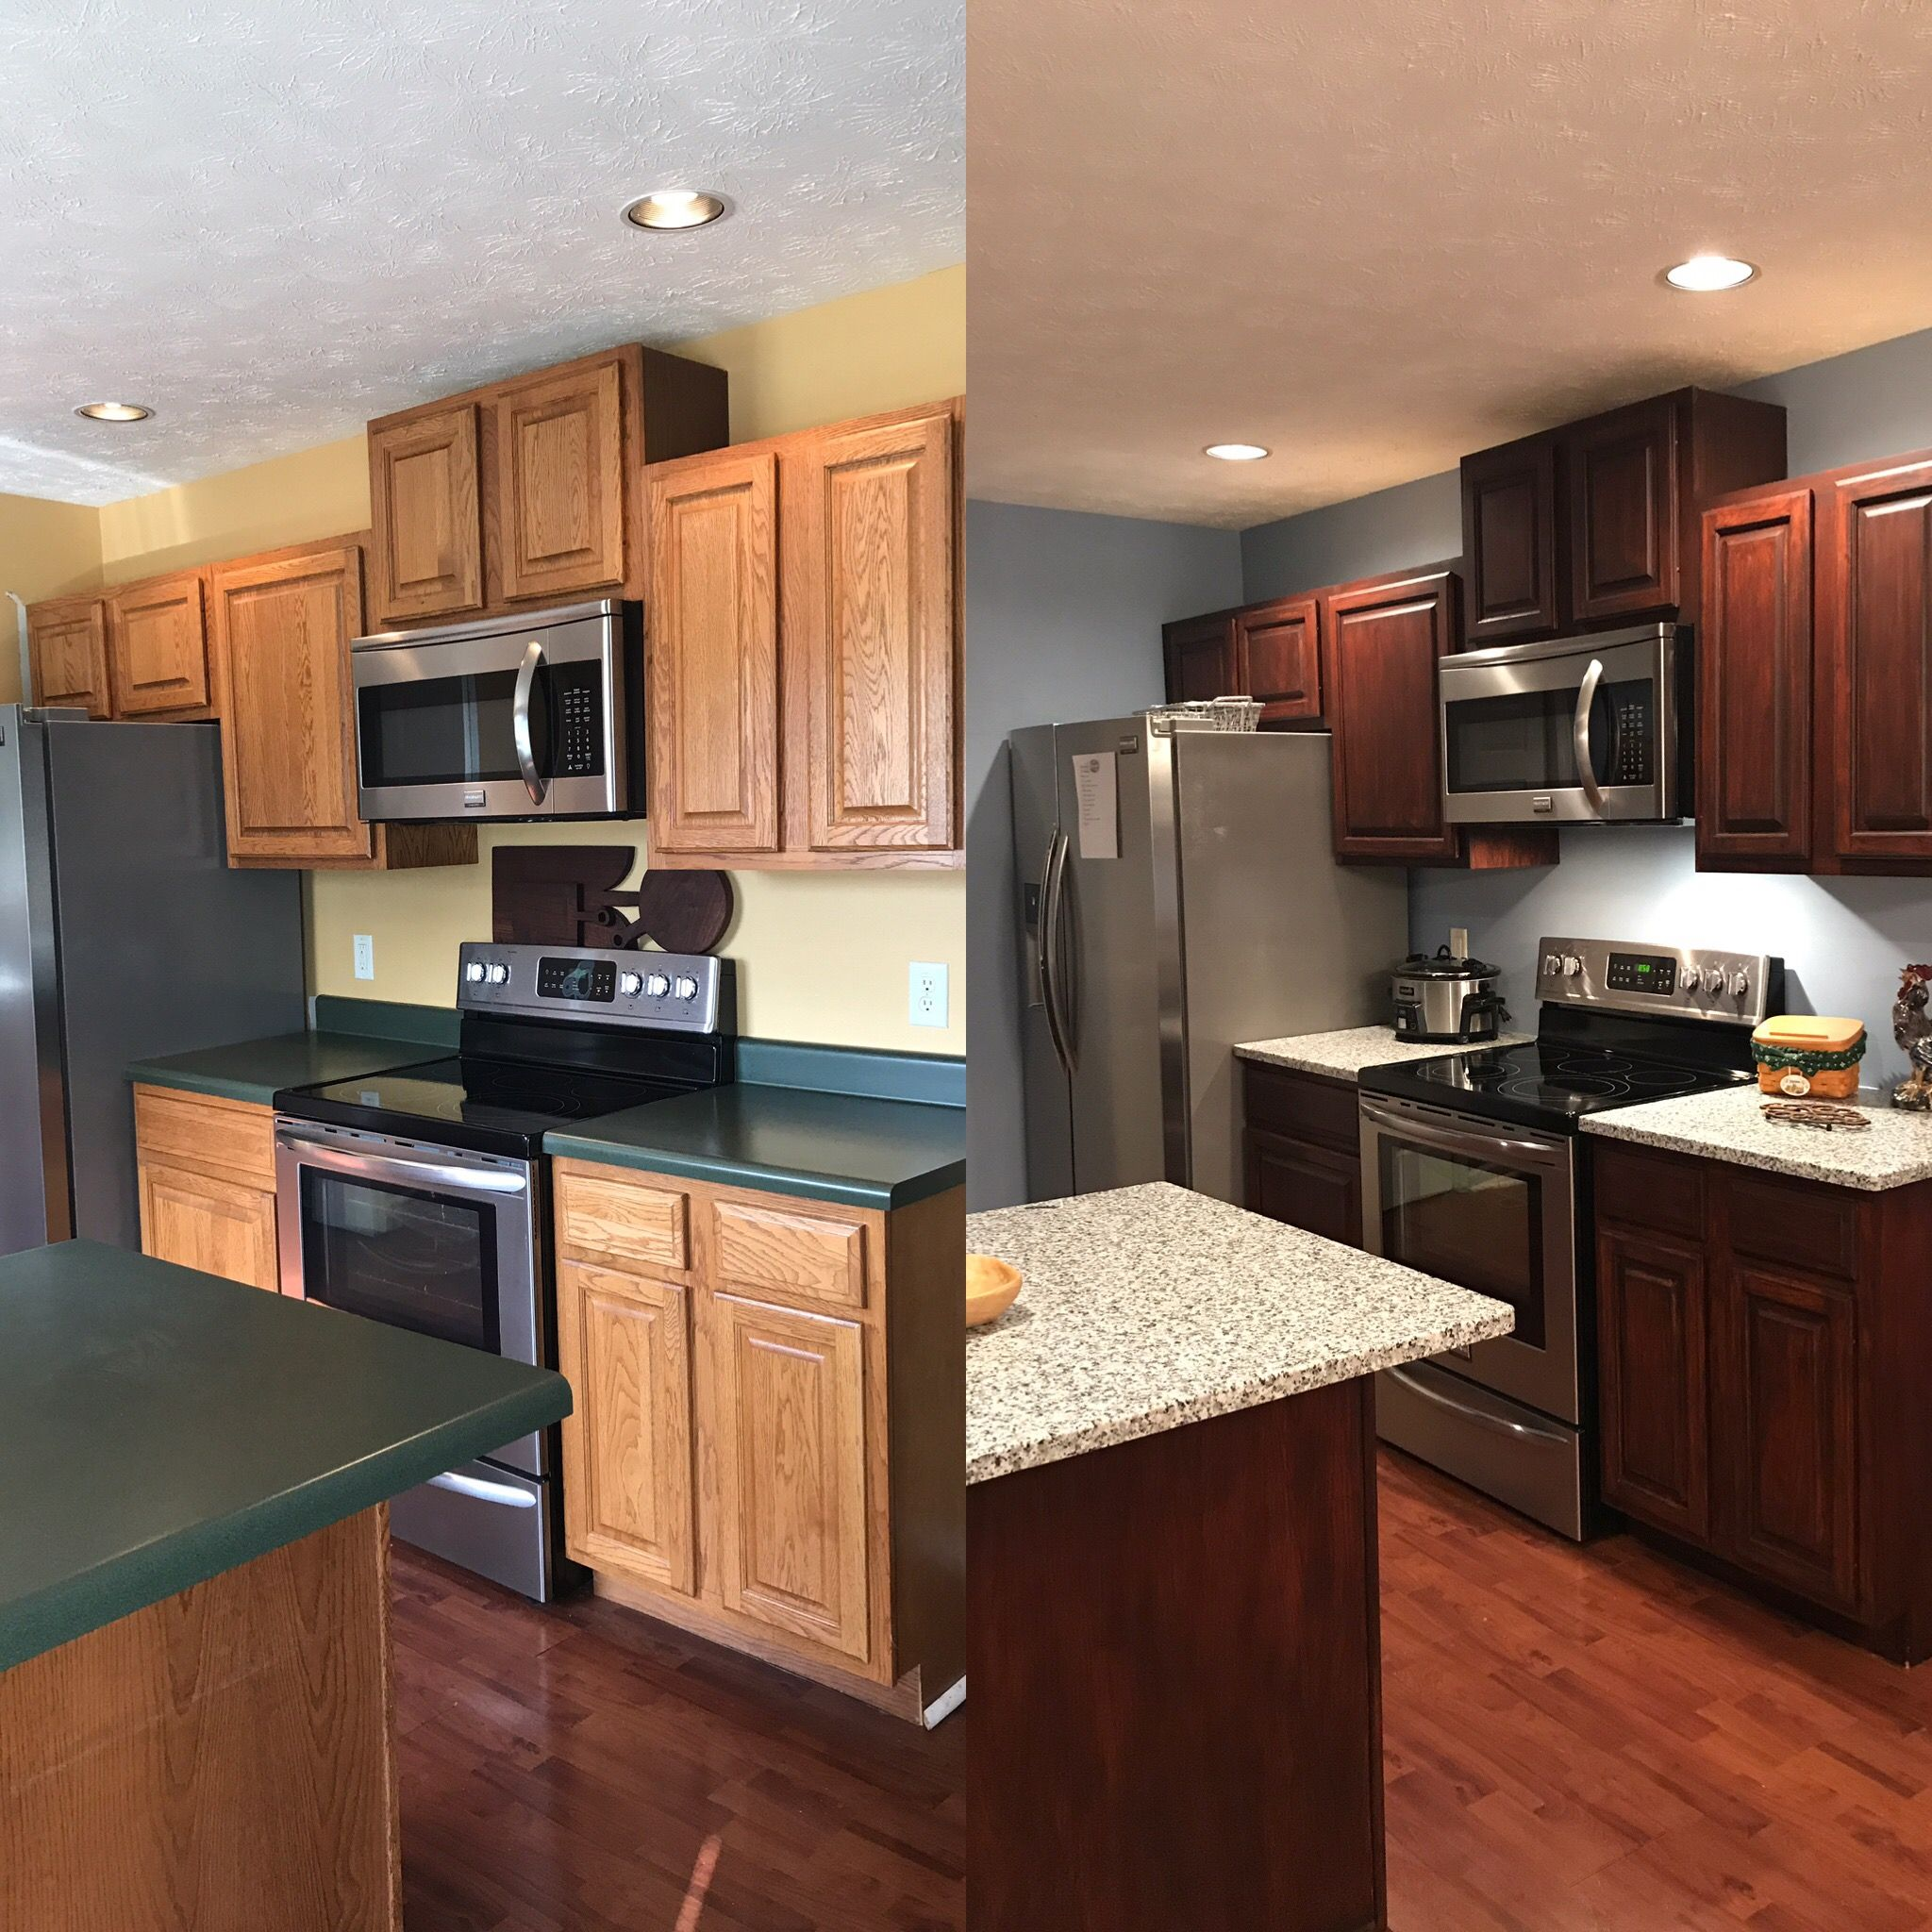 Our Before And After Kitchen General Finishes Gel Stain In Brown Mahogany New Kitchen Cabinets Before And After Stained Kitchen Cabinets Kitchen Remodel Cost